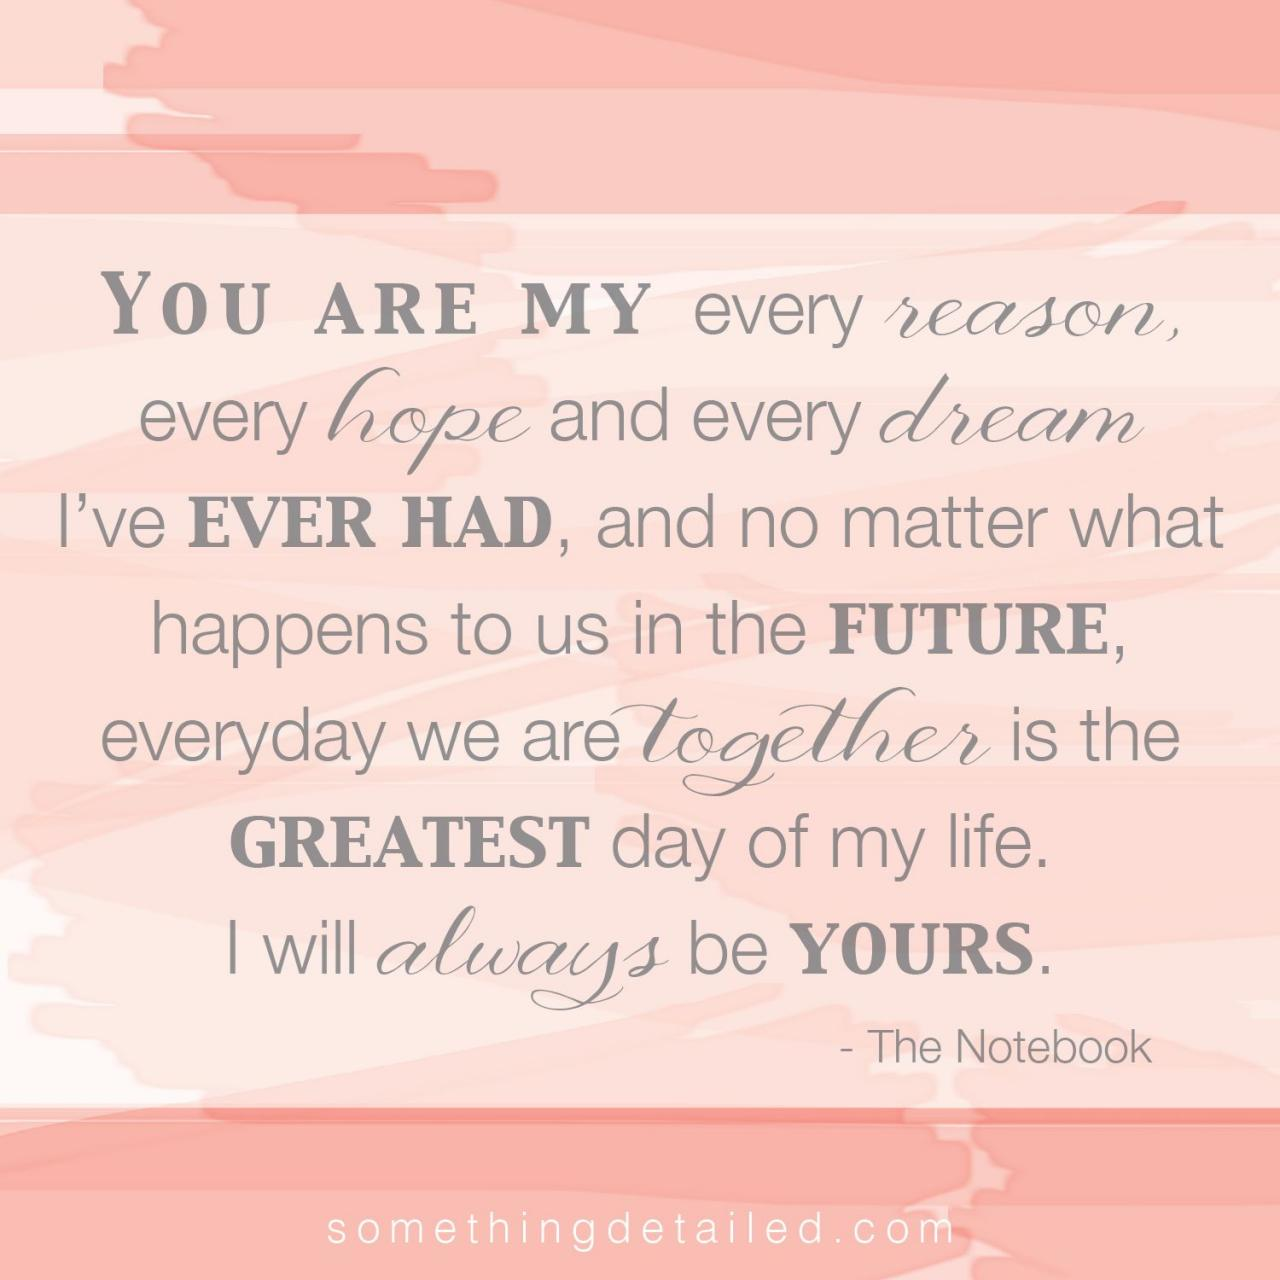 Quotes Of Reincarnated Lovers Quotes Yahoo Image Search Results